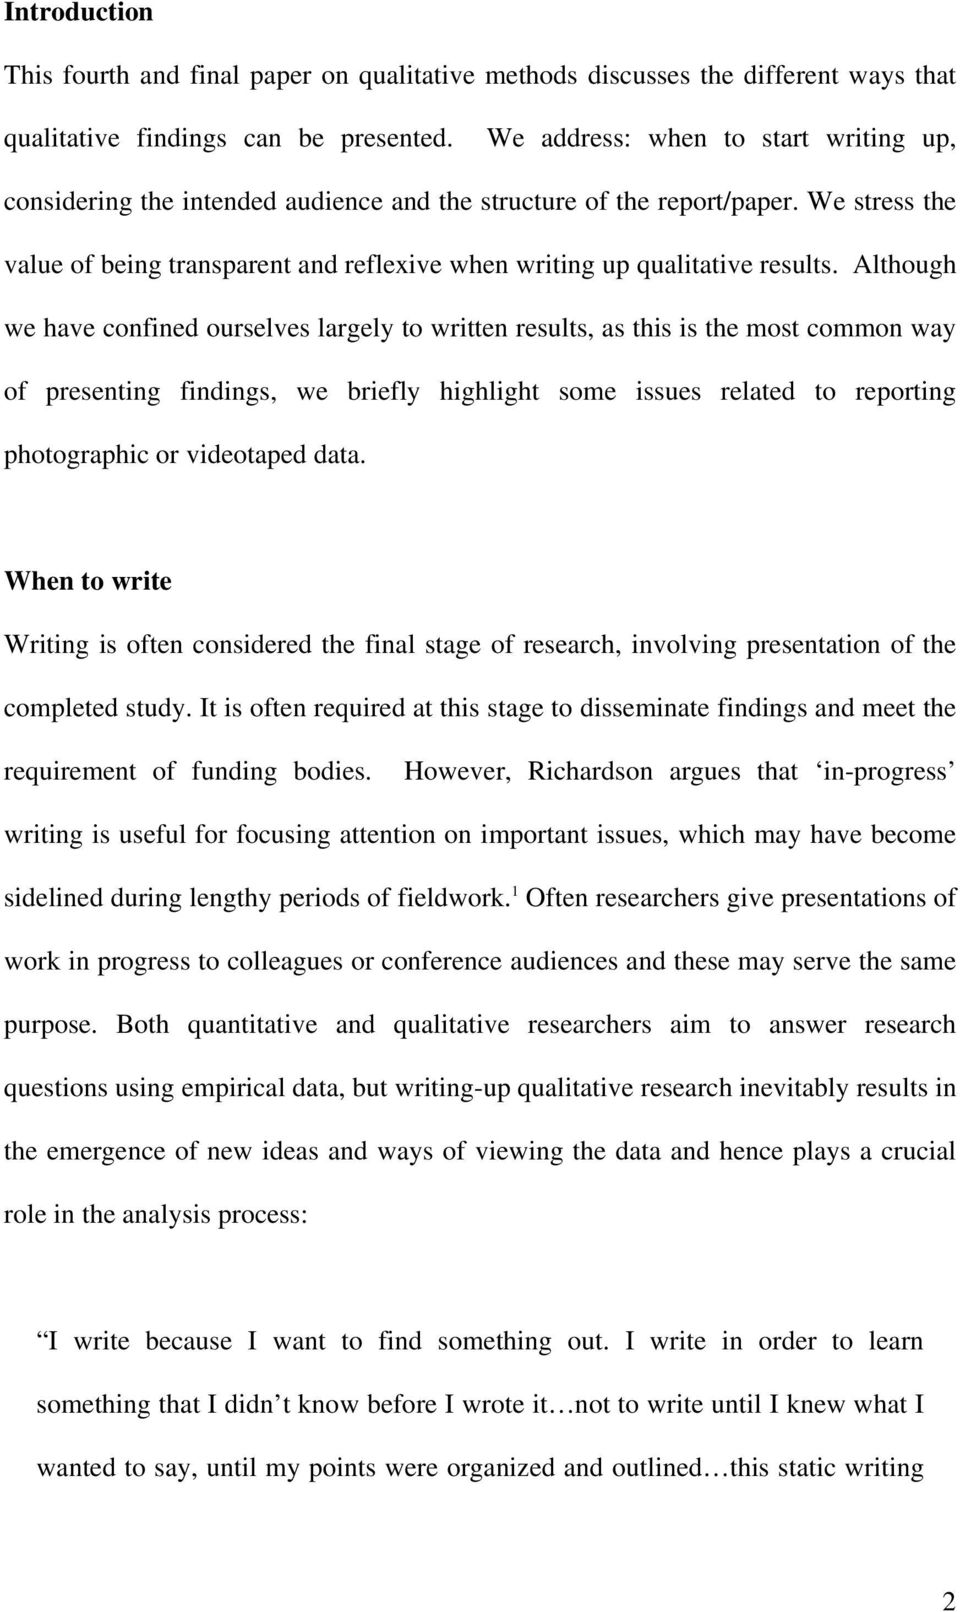 008 How To Write Up Results In Research Paper Page 2 Stupendous A Full